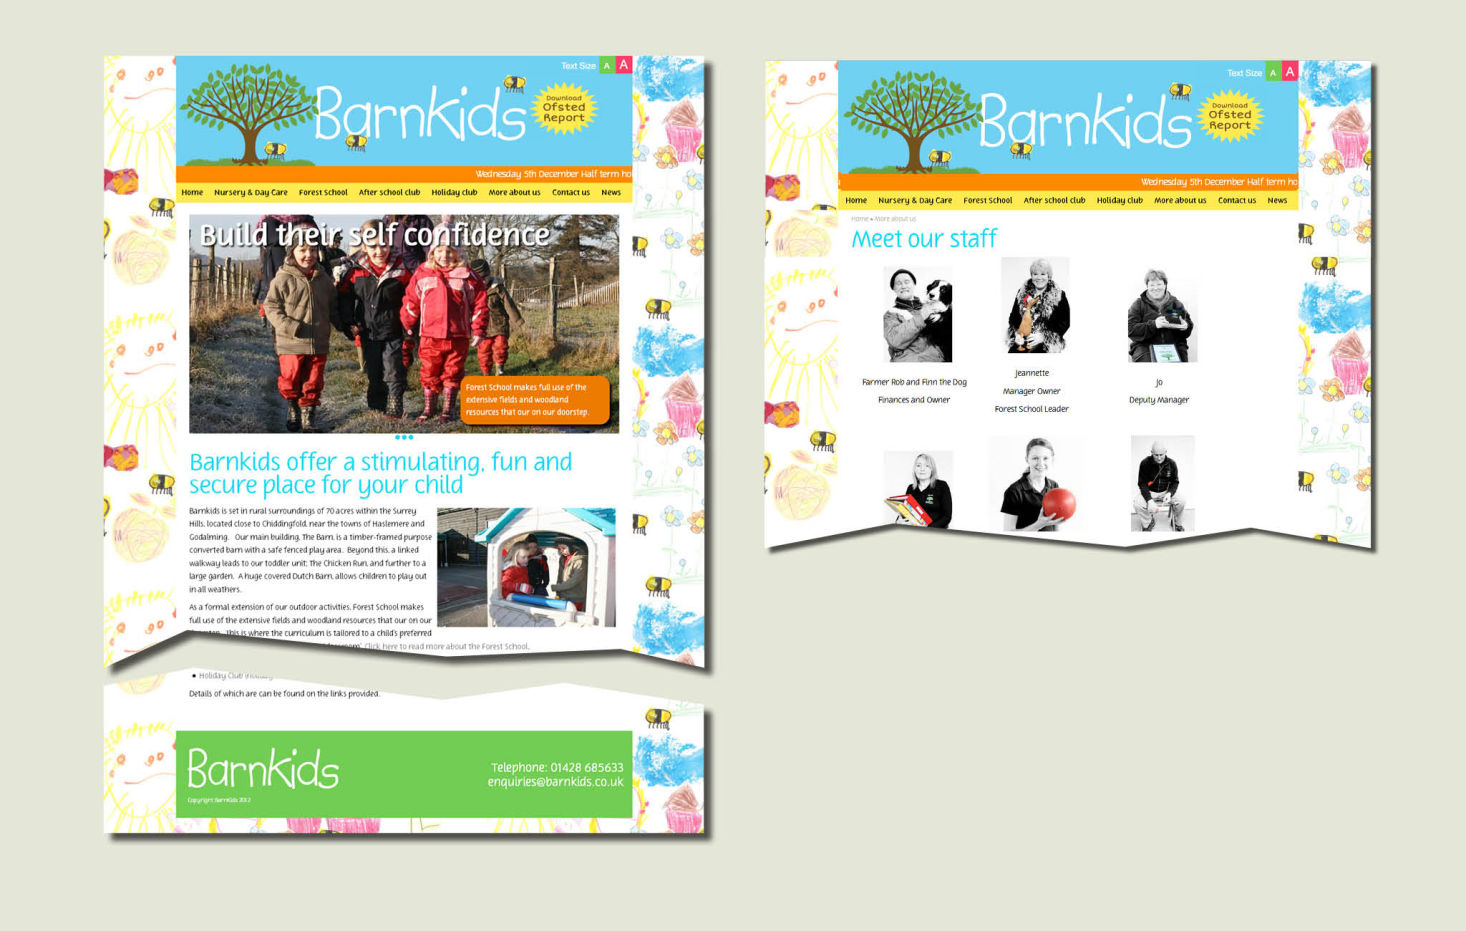 Design examples of website pages for Barnkids